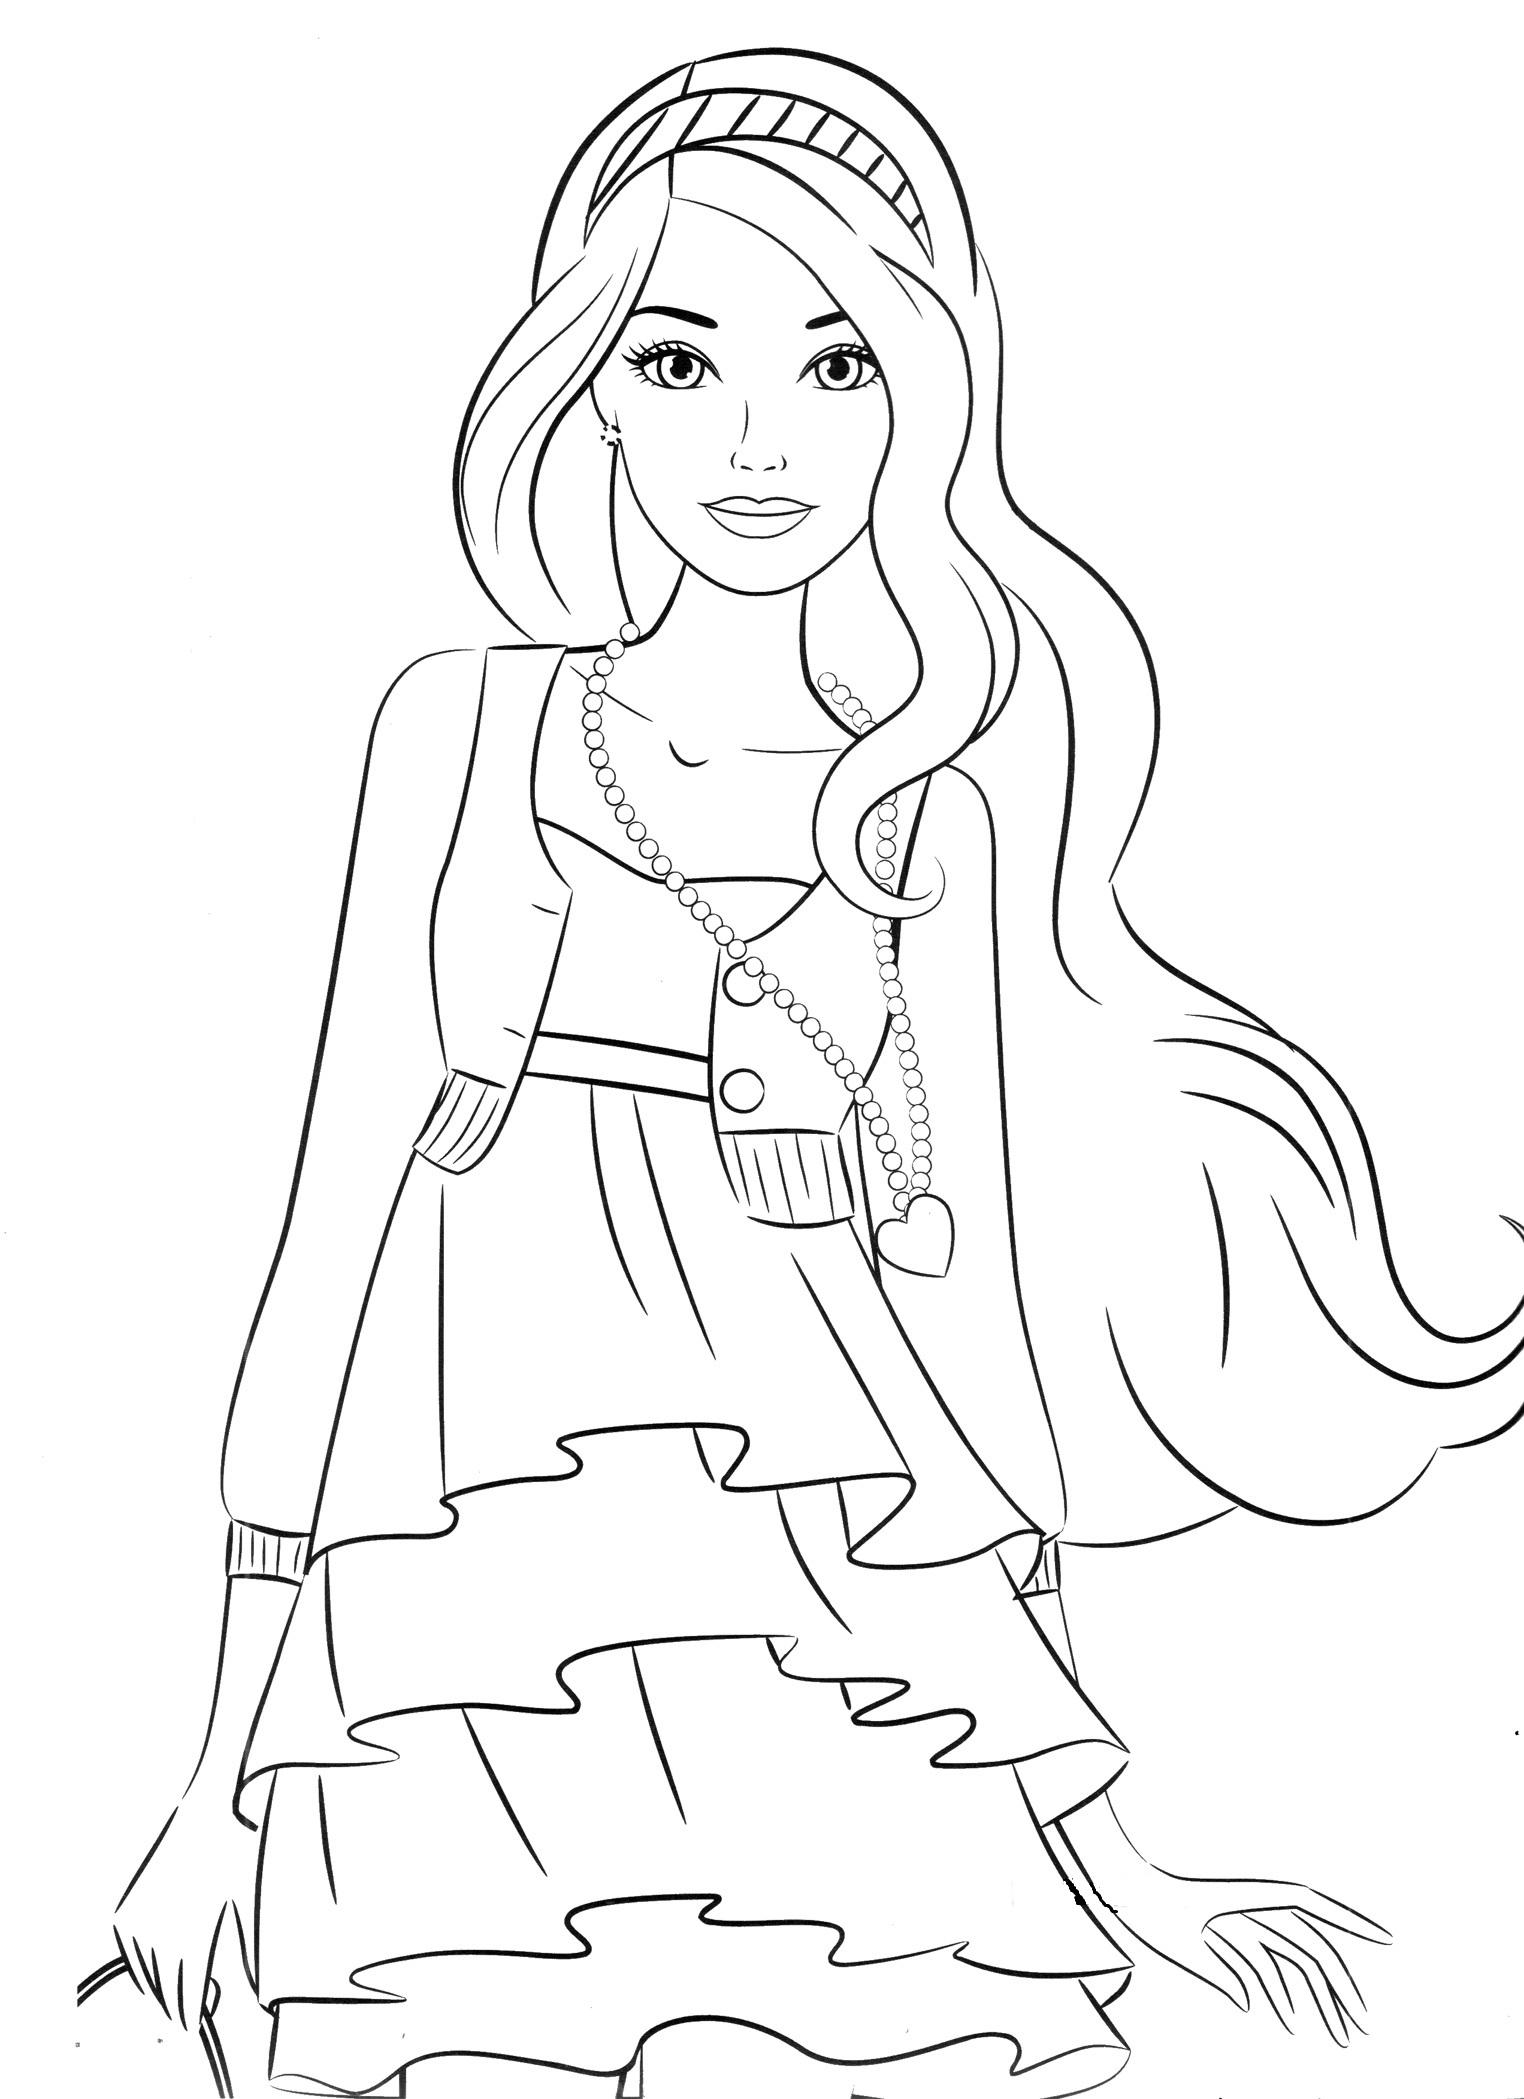 colouring pages for 12 year olds coloring pages for 12 year olds 2067785 pages 12 year colouring olds for